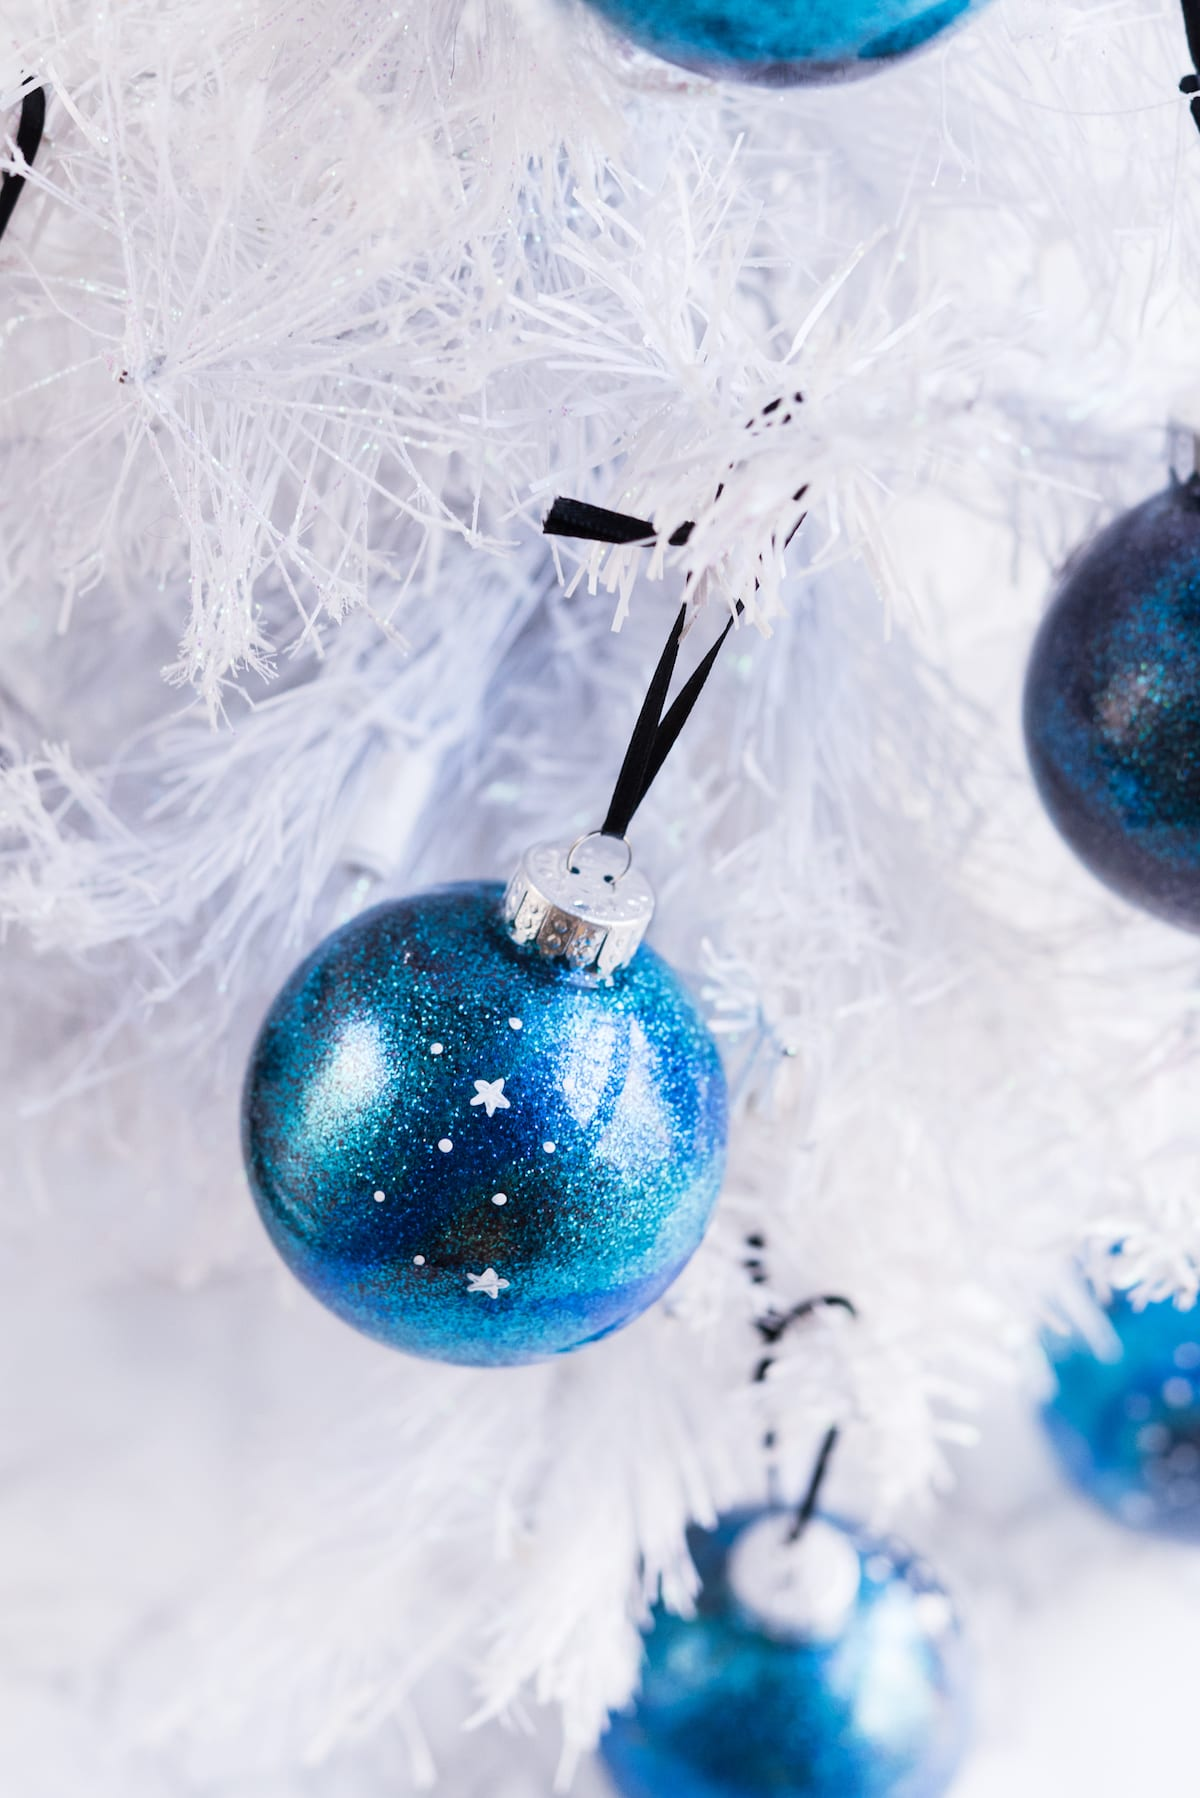 DIY Galaxy Homemade Ornaments | DIY ornaments, glitter ornaments, Christmas entertaining and entertaining tips from entertaining blog @cydconverse